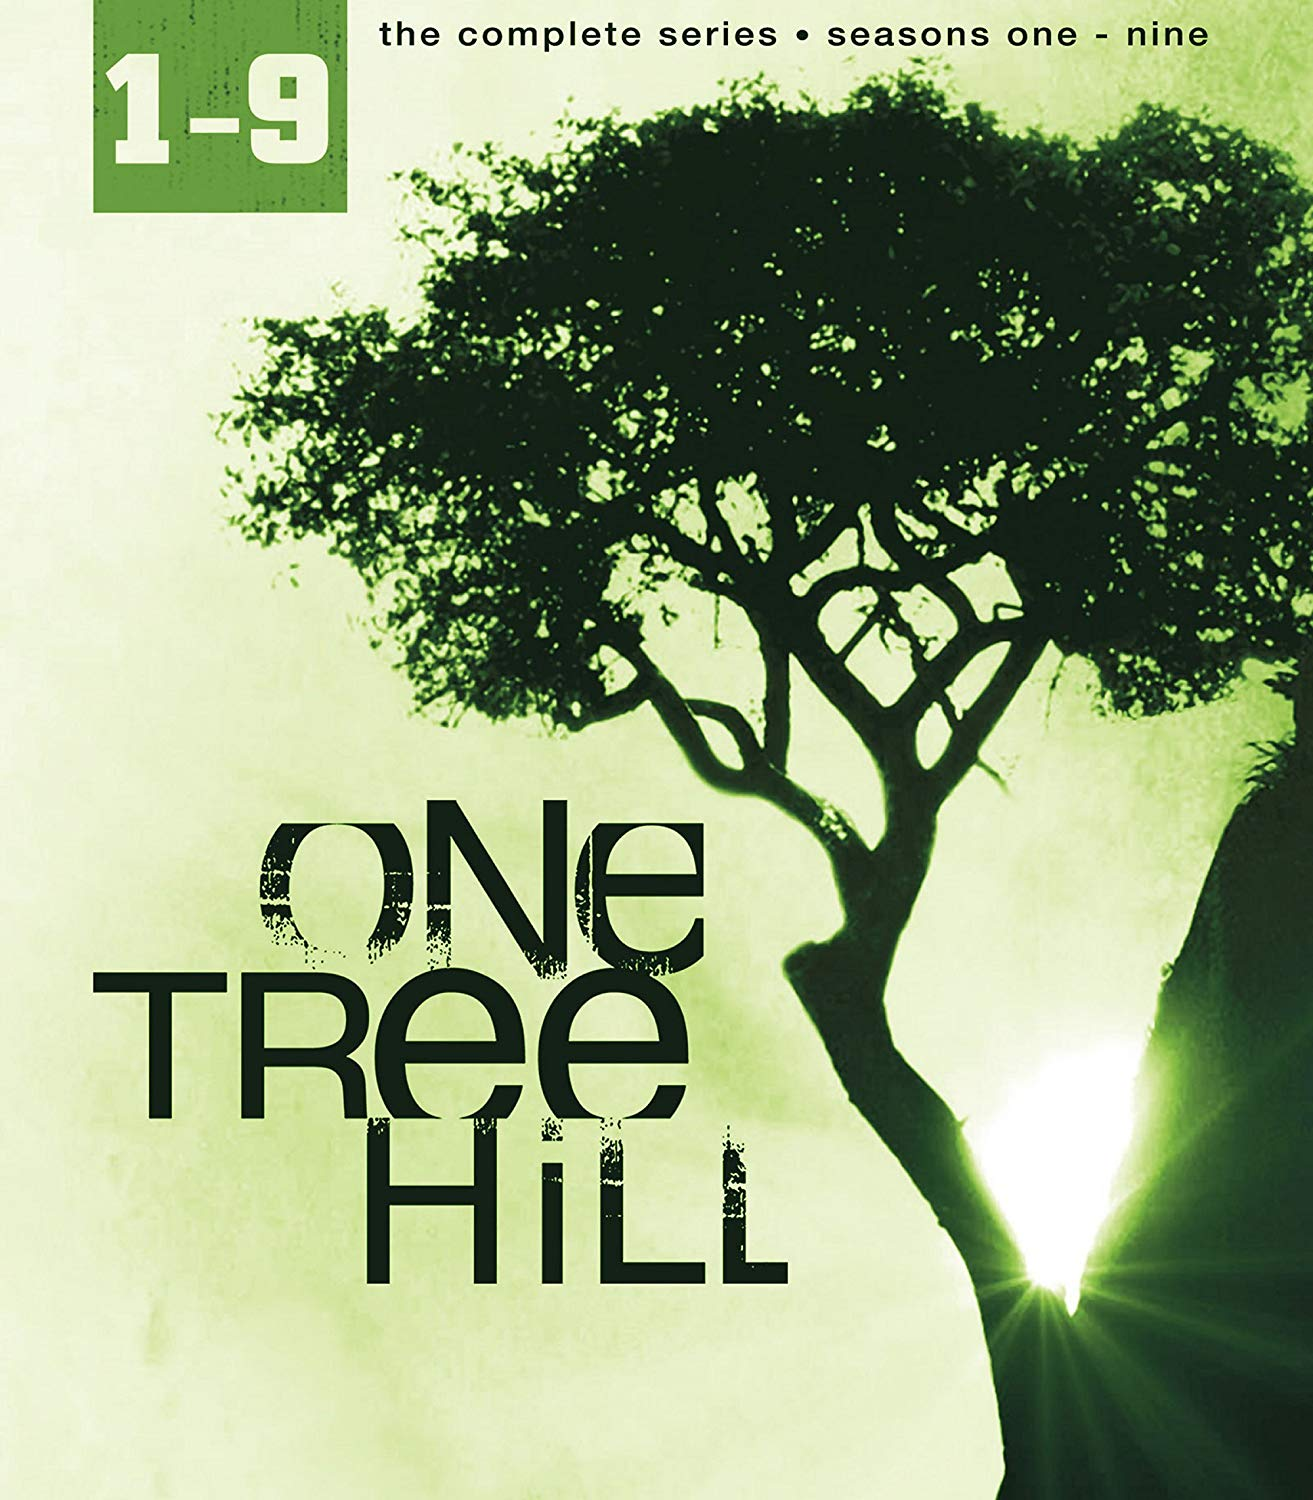 Amazon.com: One Tree Hill: The Complete Series (Seasons 1.